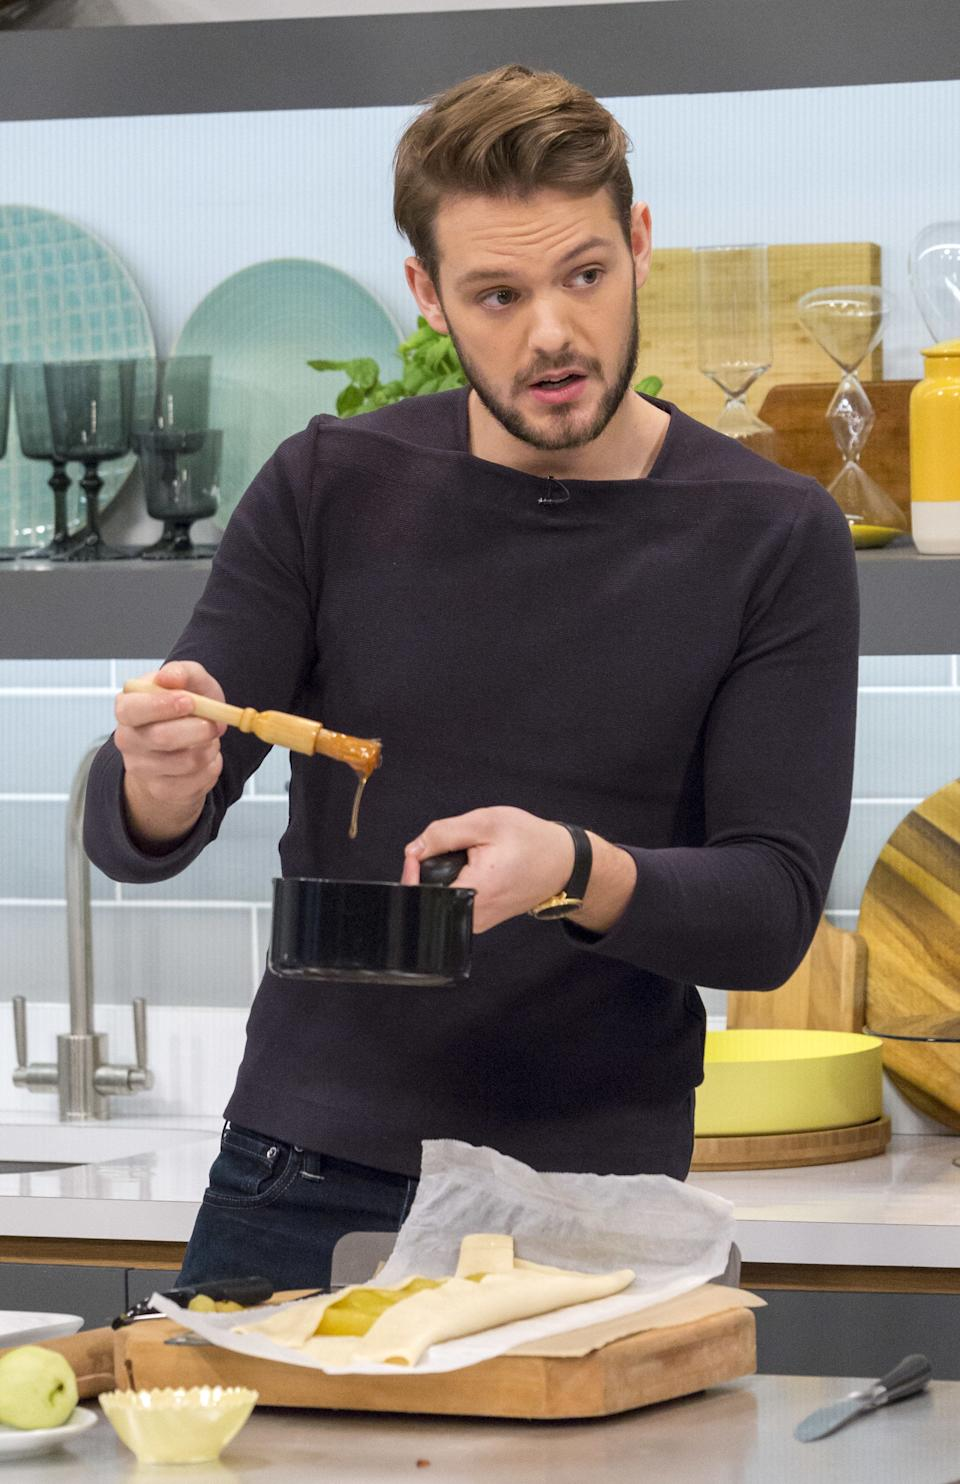 John hasn't stopped working since winning series three. As well as publishing two cookbooks, 'John Whaites Bakes' and John Whaites Bakes At Home', he earned a patisserie diploma from Le Cordon Bleu, launched his own online chocolate shop The Hungry Dog Artisan Chocolates and is set to launch his own cookery school, John Whaite's Kitchen. On top of all that he's also the resident baker on Lorraine Kelly's ITV morning show. Phew!